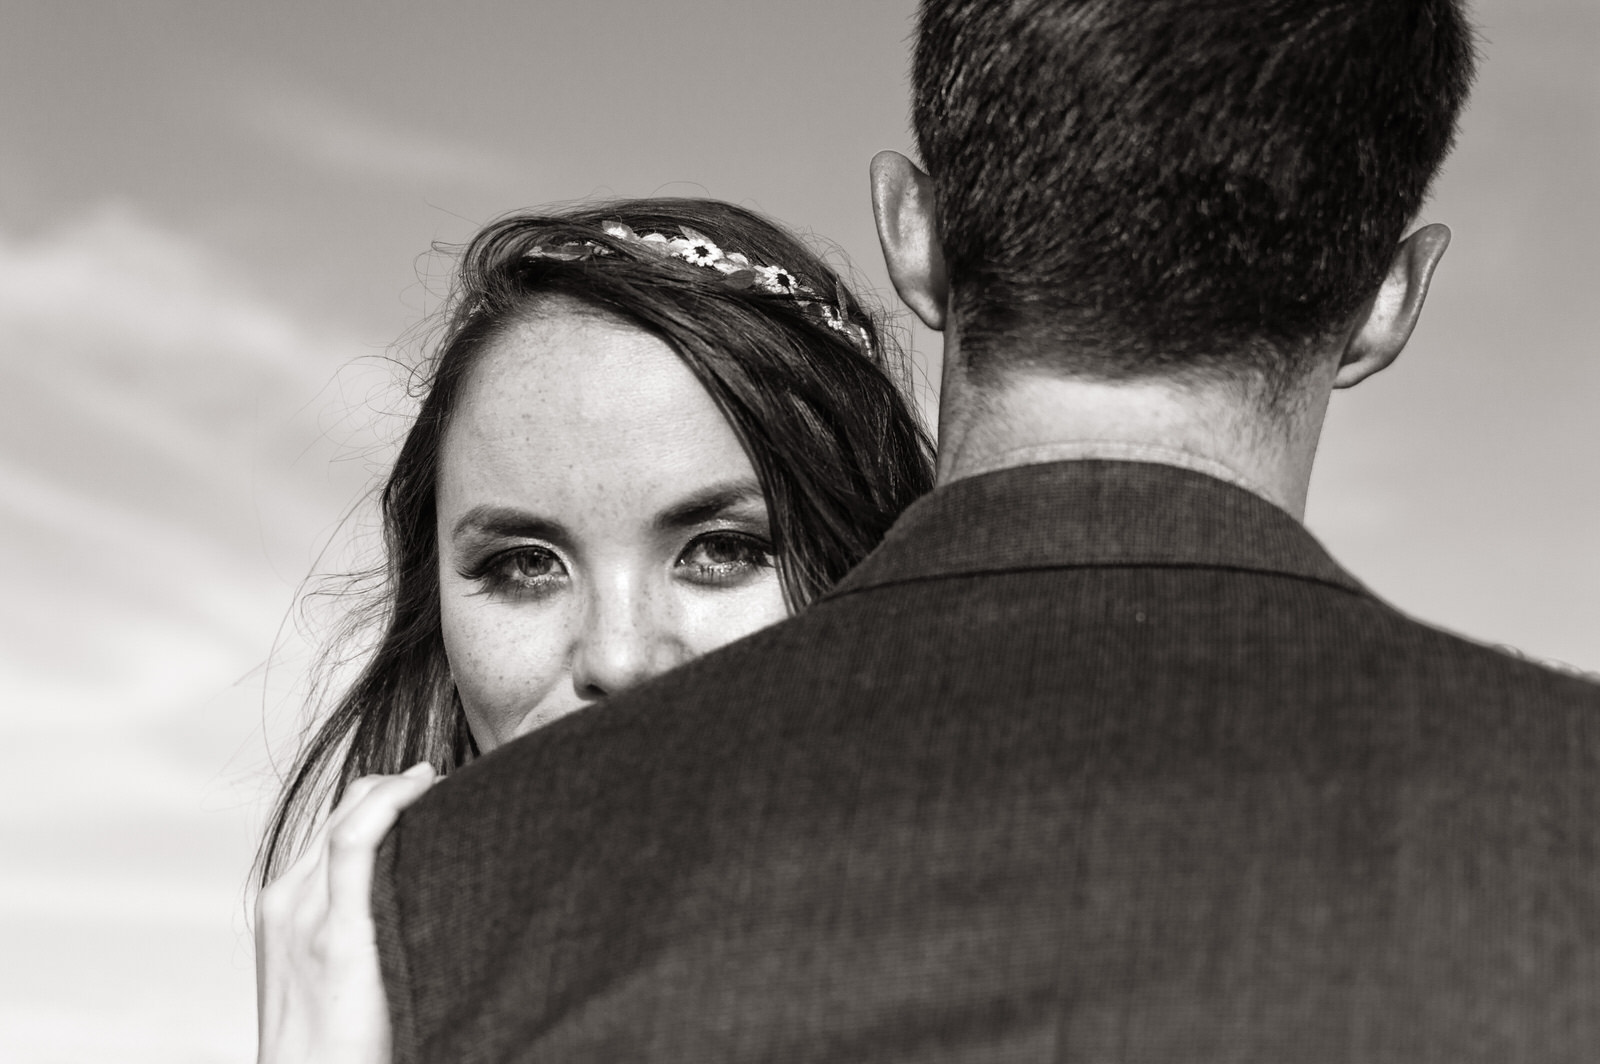 Becky & Steve - Quail Hill, Irvine engagement photo shoot by Jaclyn Le